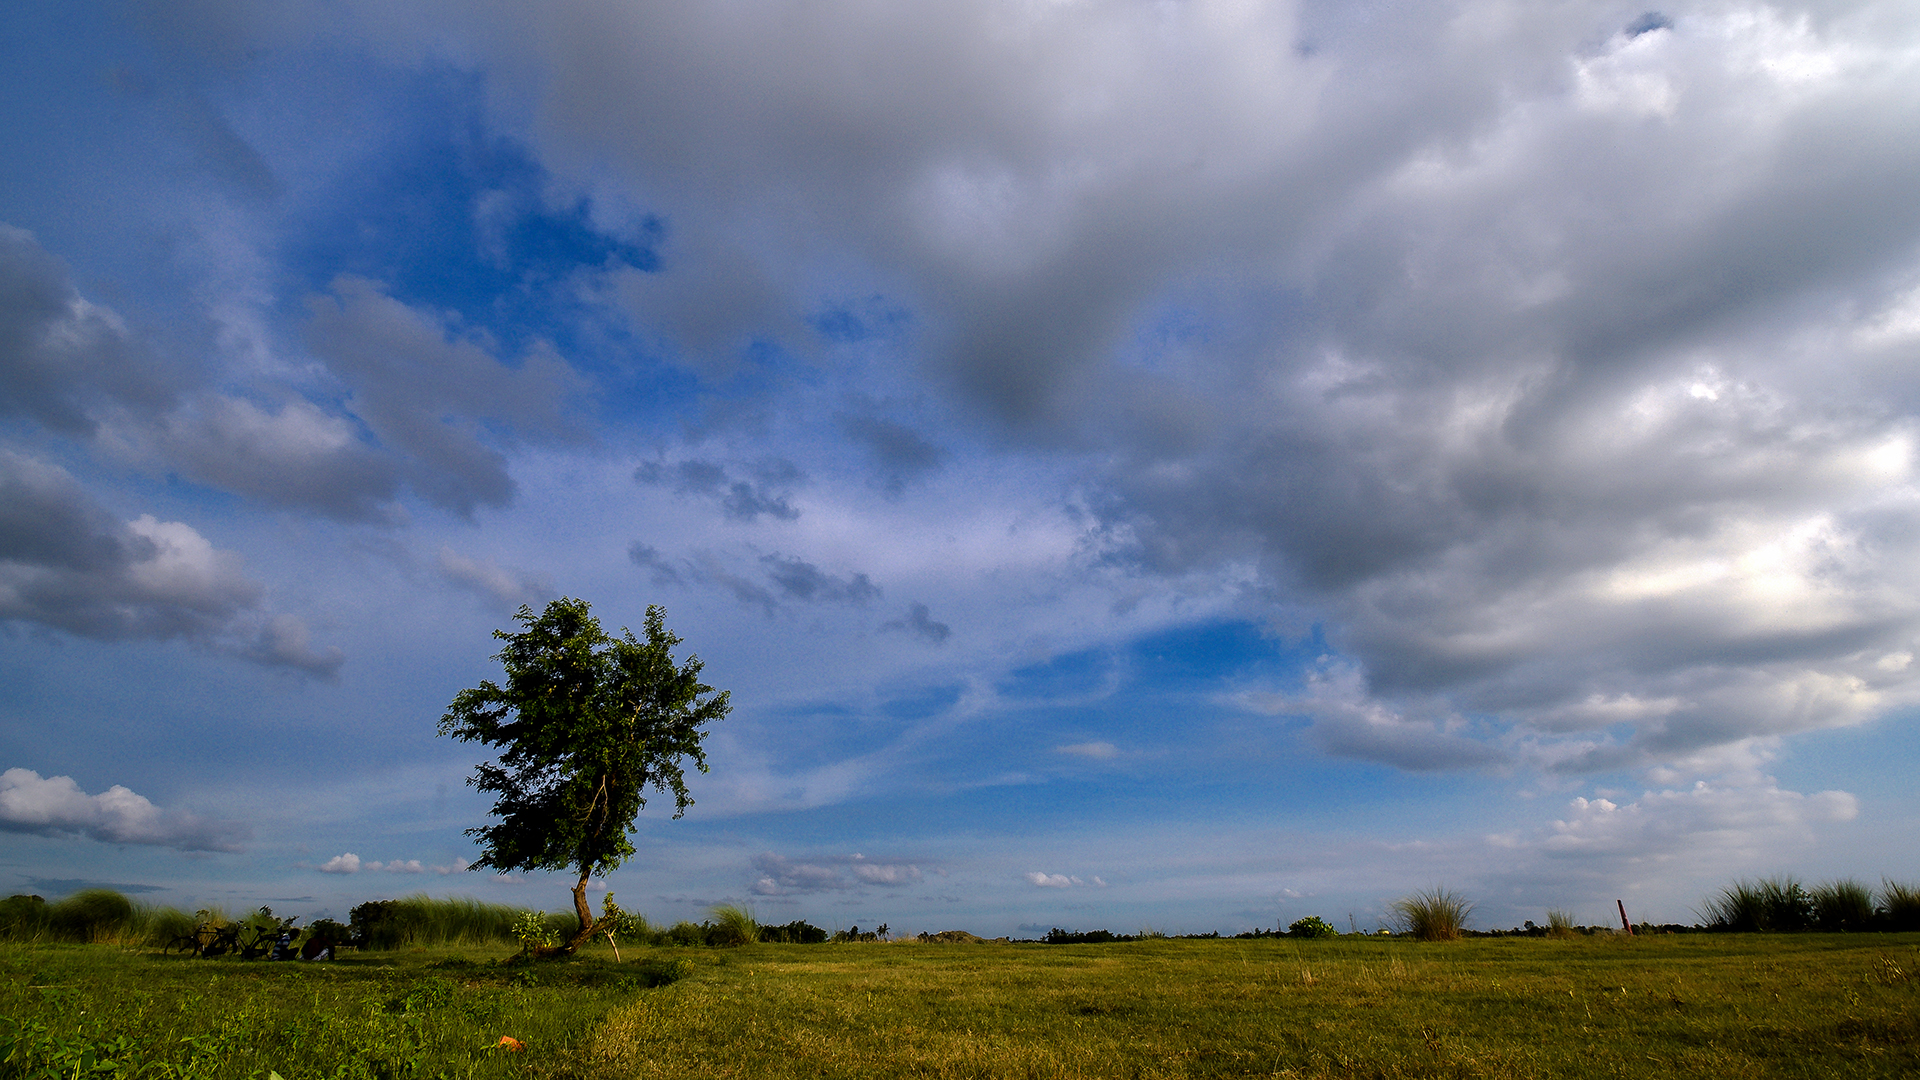 I wondered and stopped to view the bonding between the playful clouds and lonely tree standing alone waiting for rain drops.